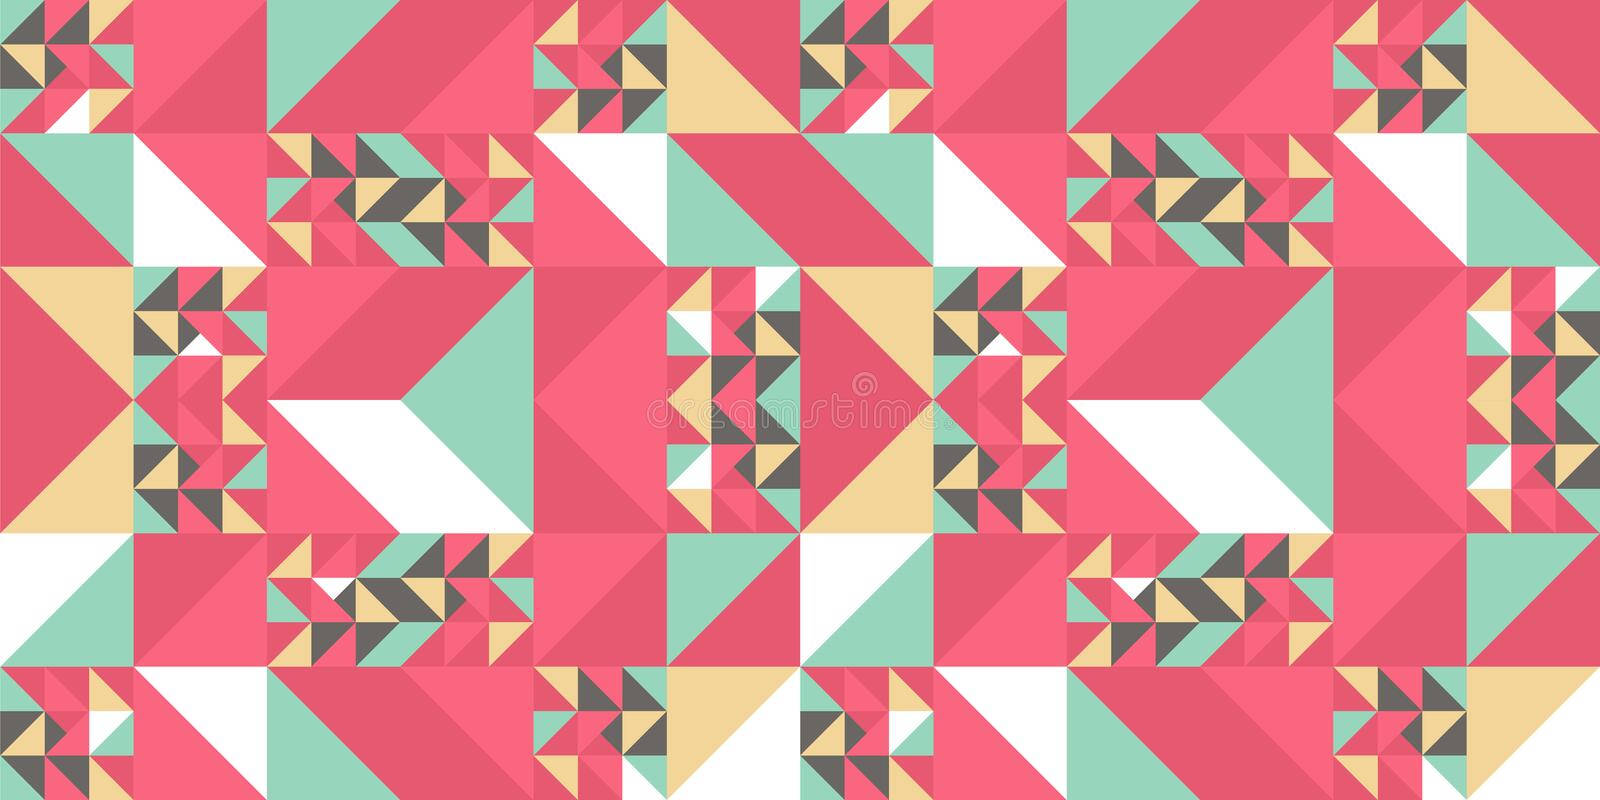 Triangle colorful pattern background for fashion textile print. Good for pillow, carpet, and blanket cover wrapping with trendy stock illustration